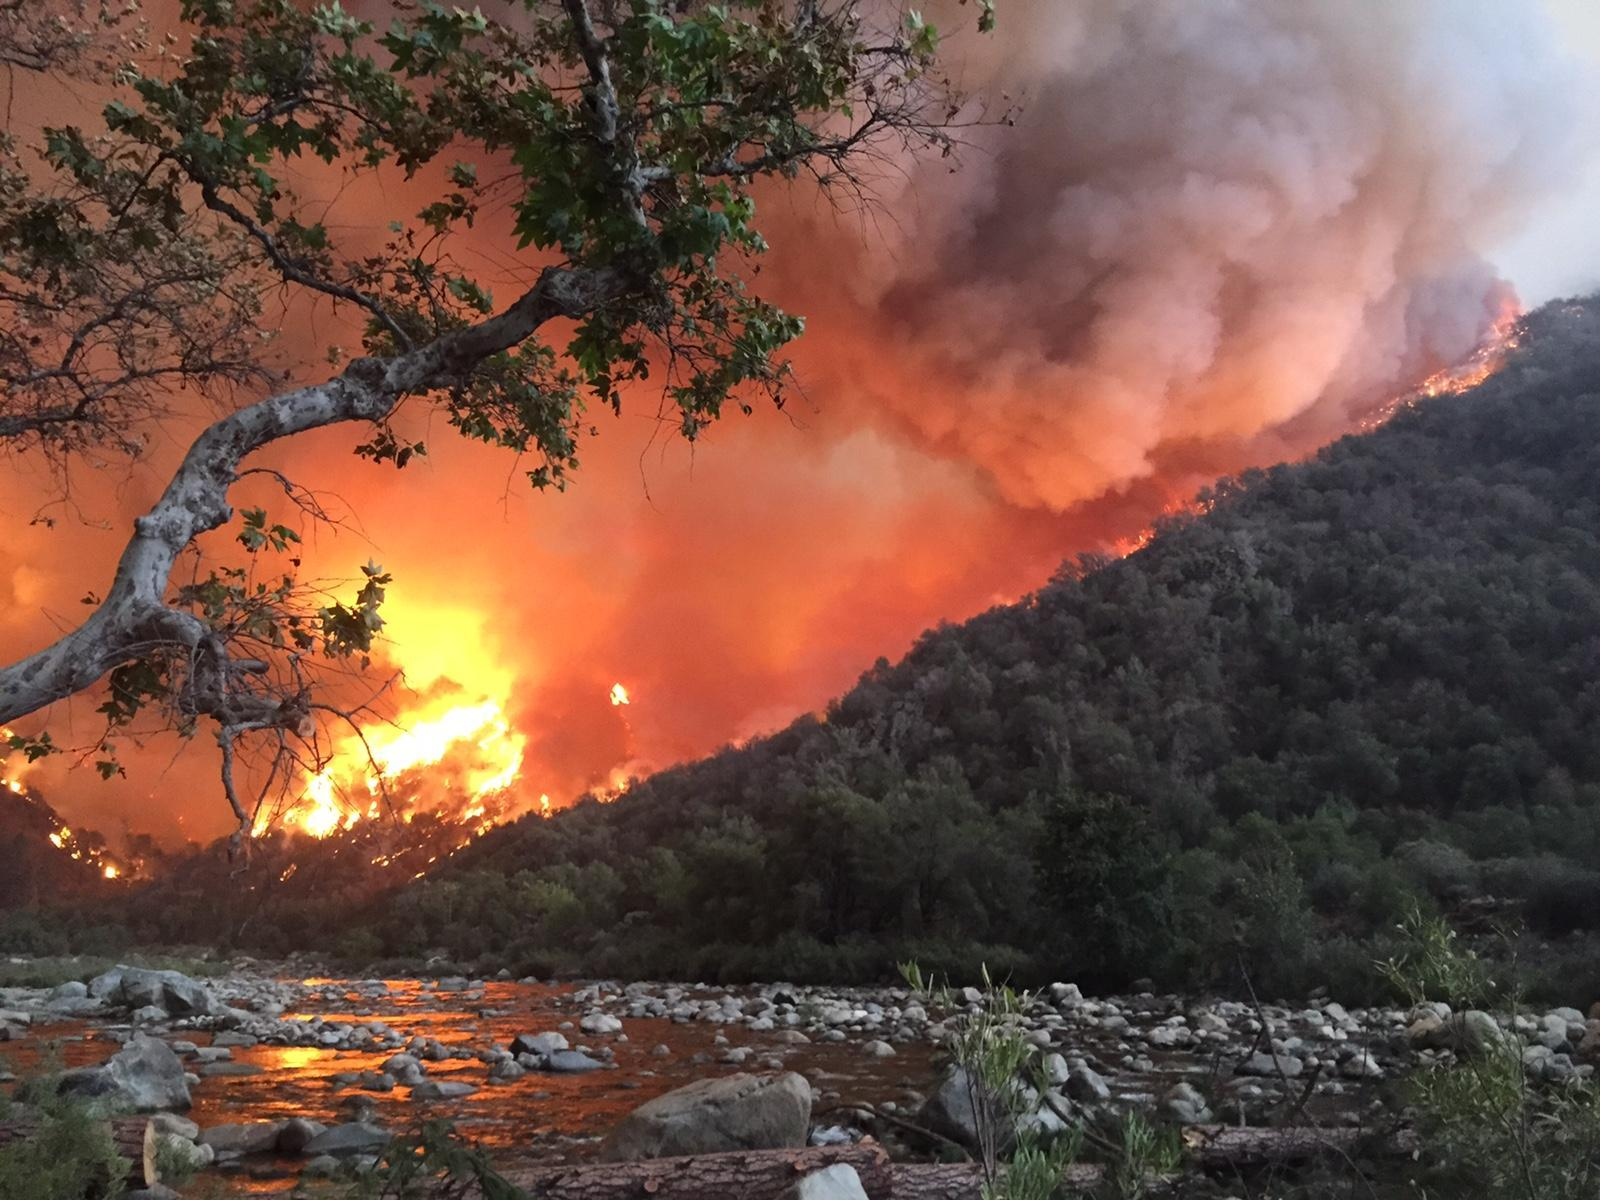 tree, riverbed, mountainside with flames and smoke in the background